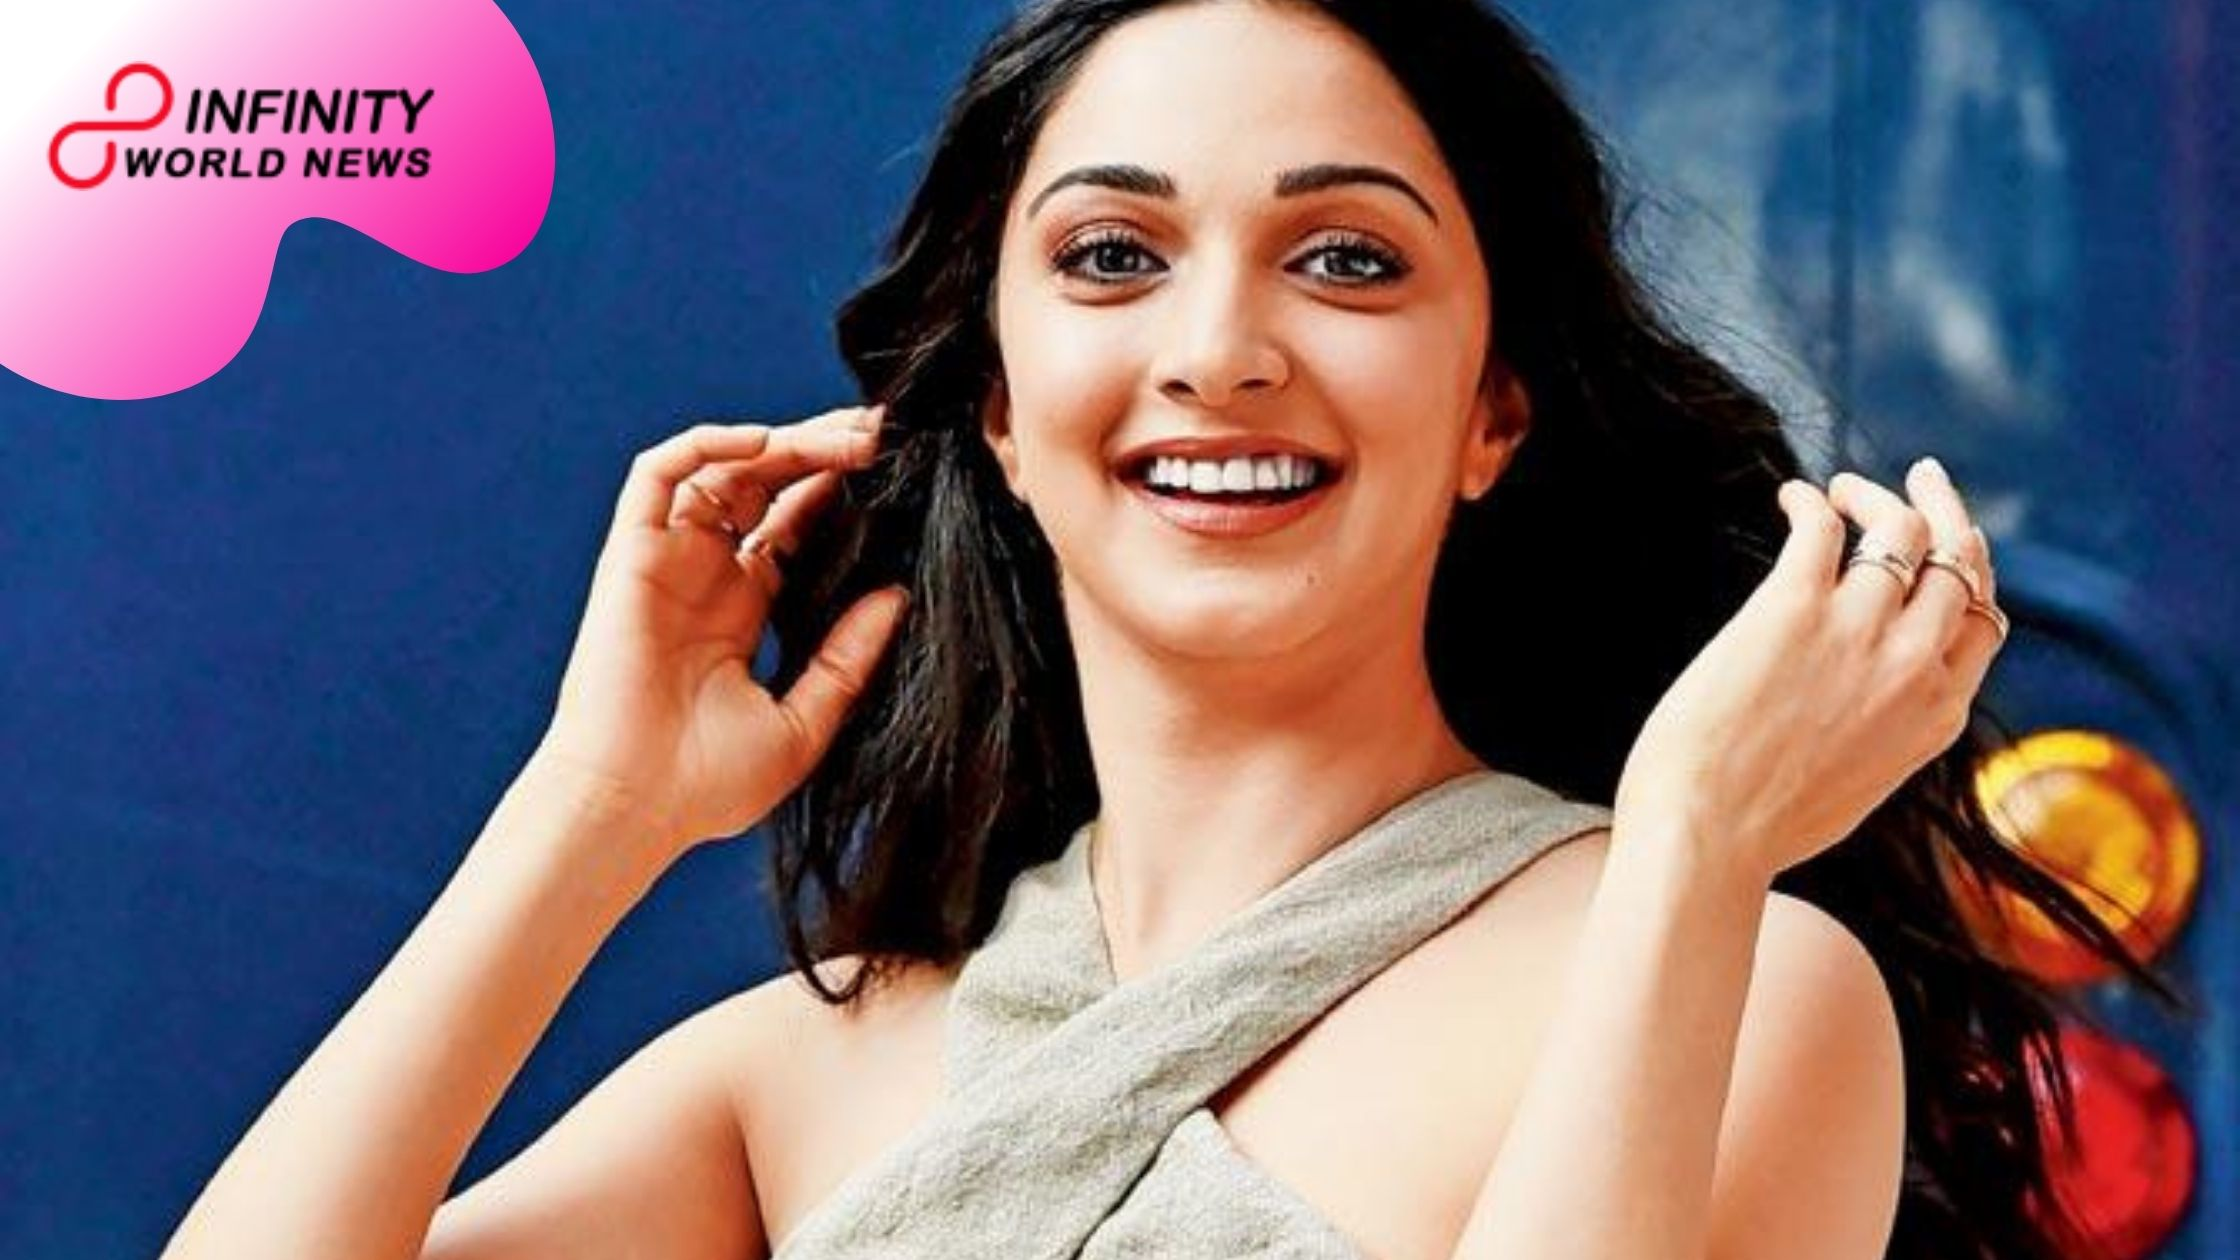 Kiara Advani roped in as brand diplomat for driving style and way of life shopping site